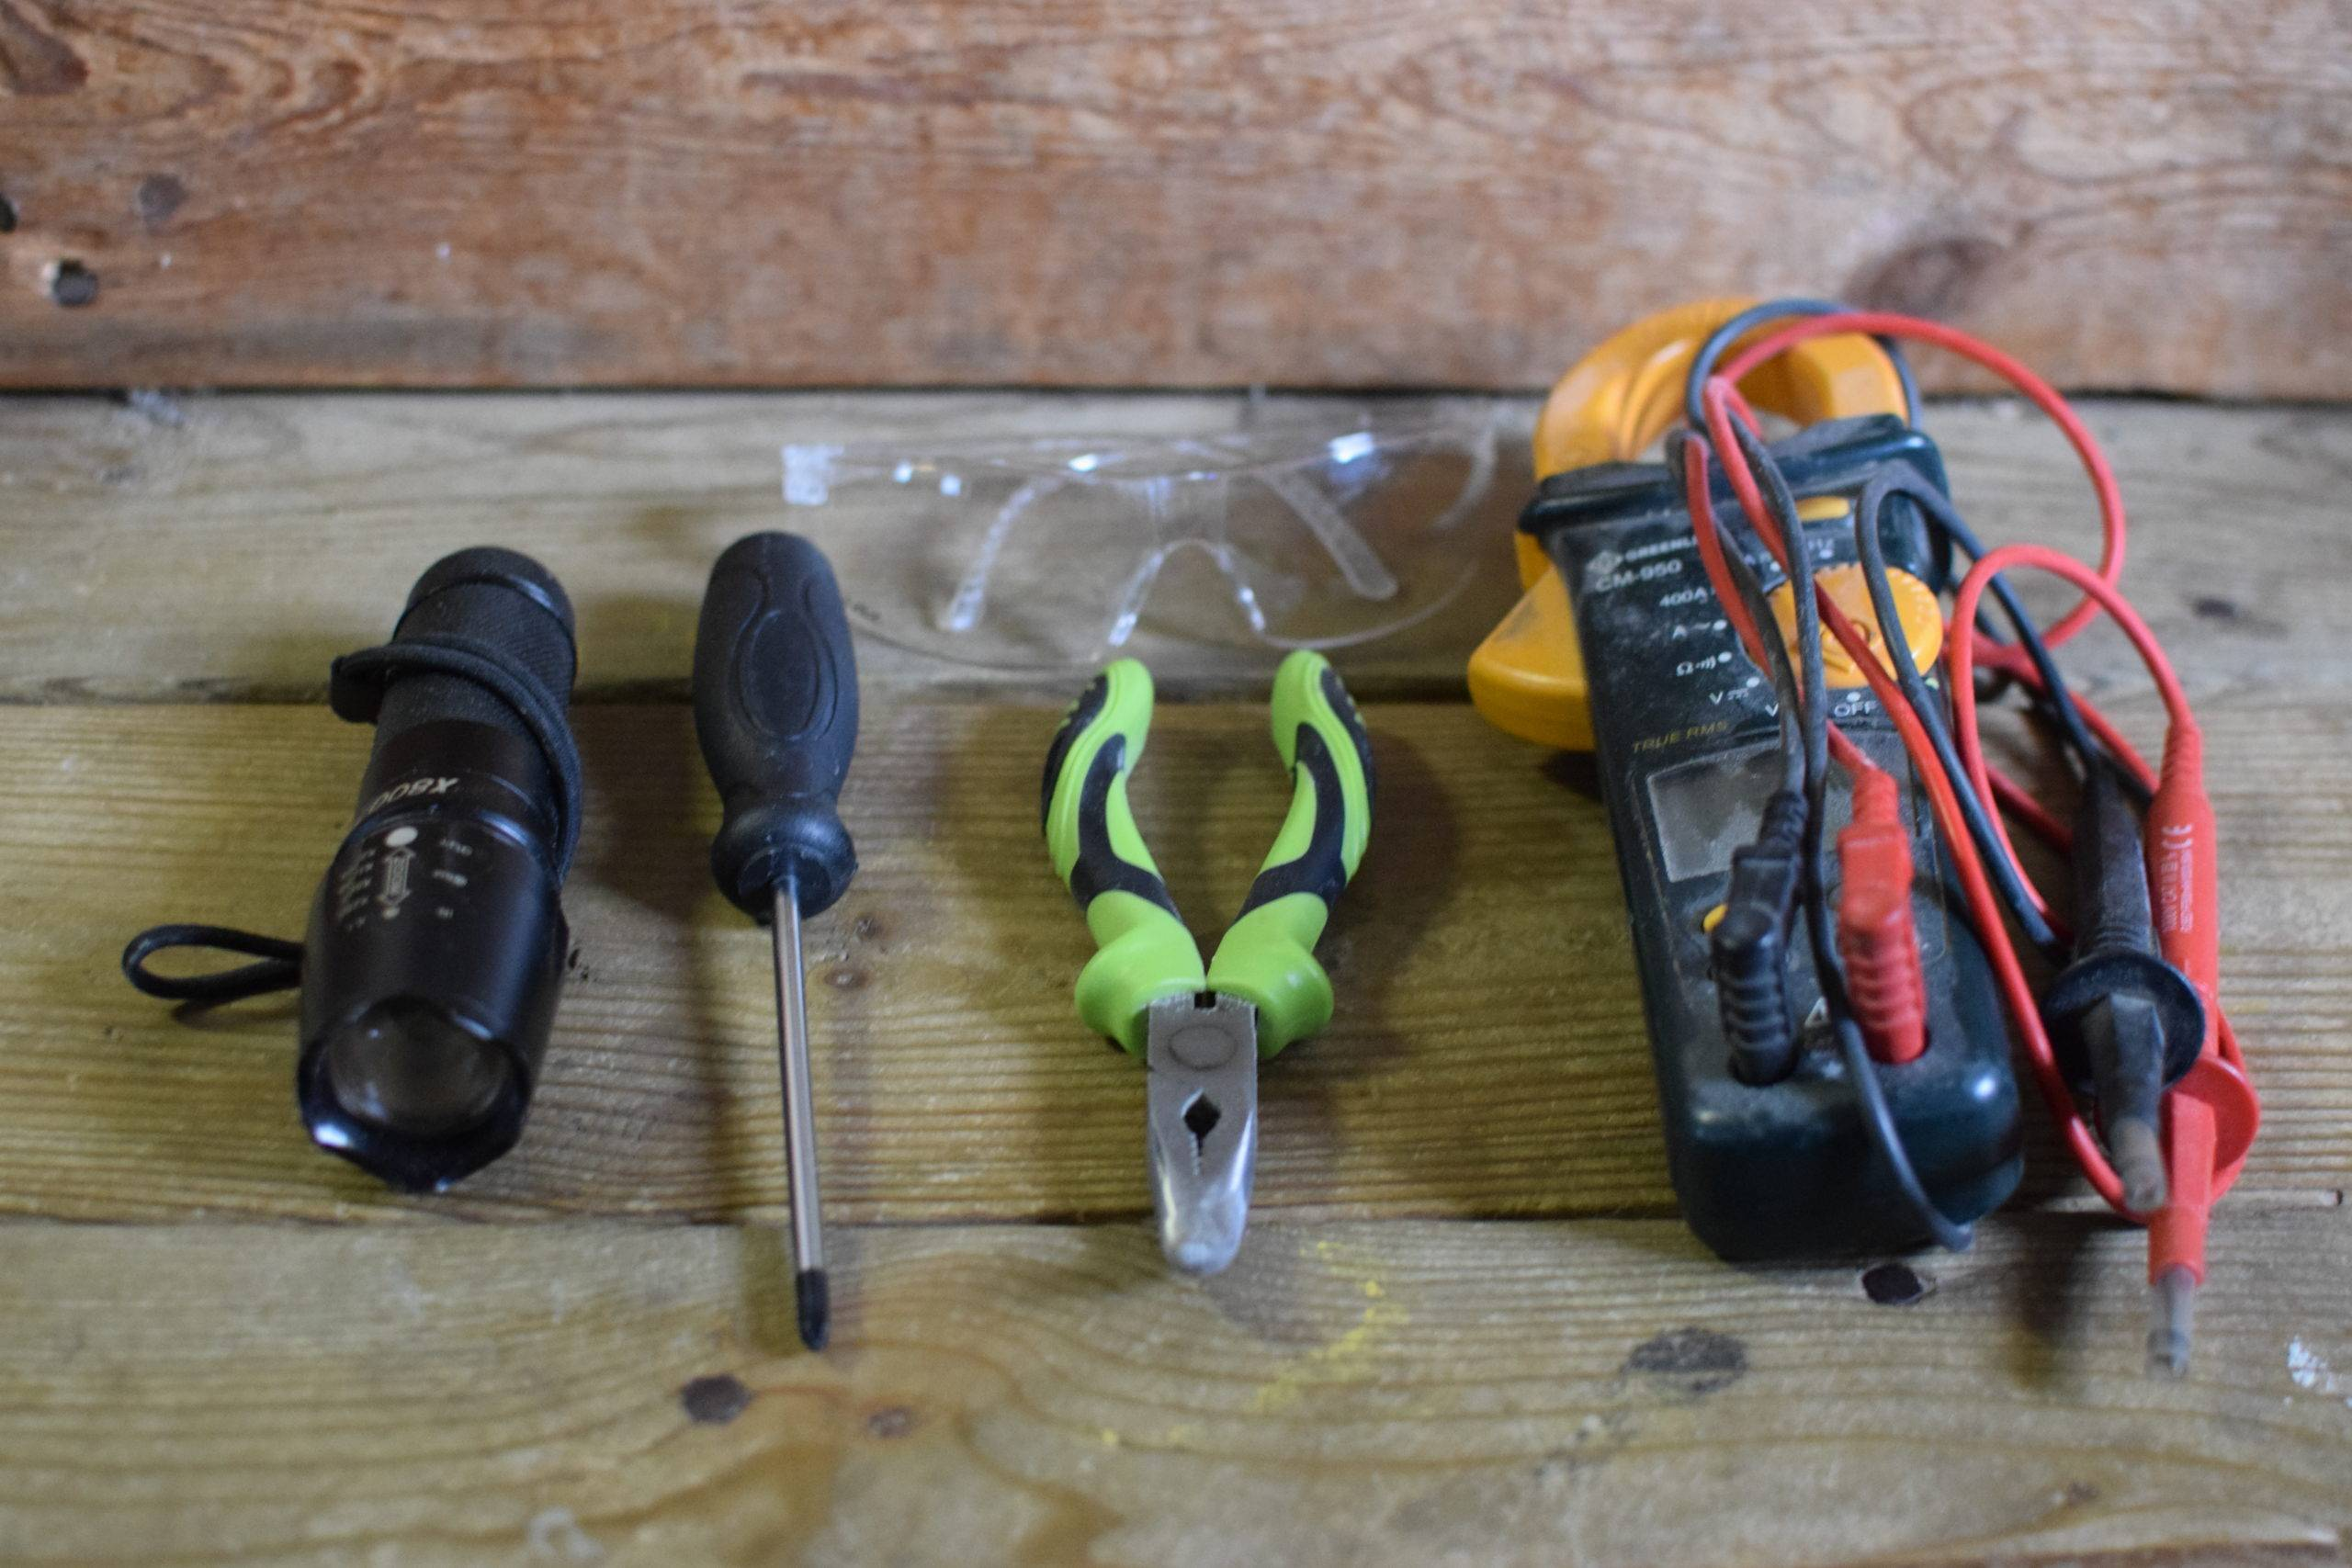 Flashlight screwdriver pliers and voltage tester